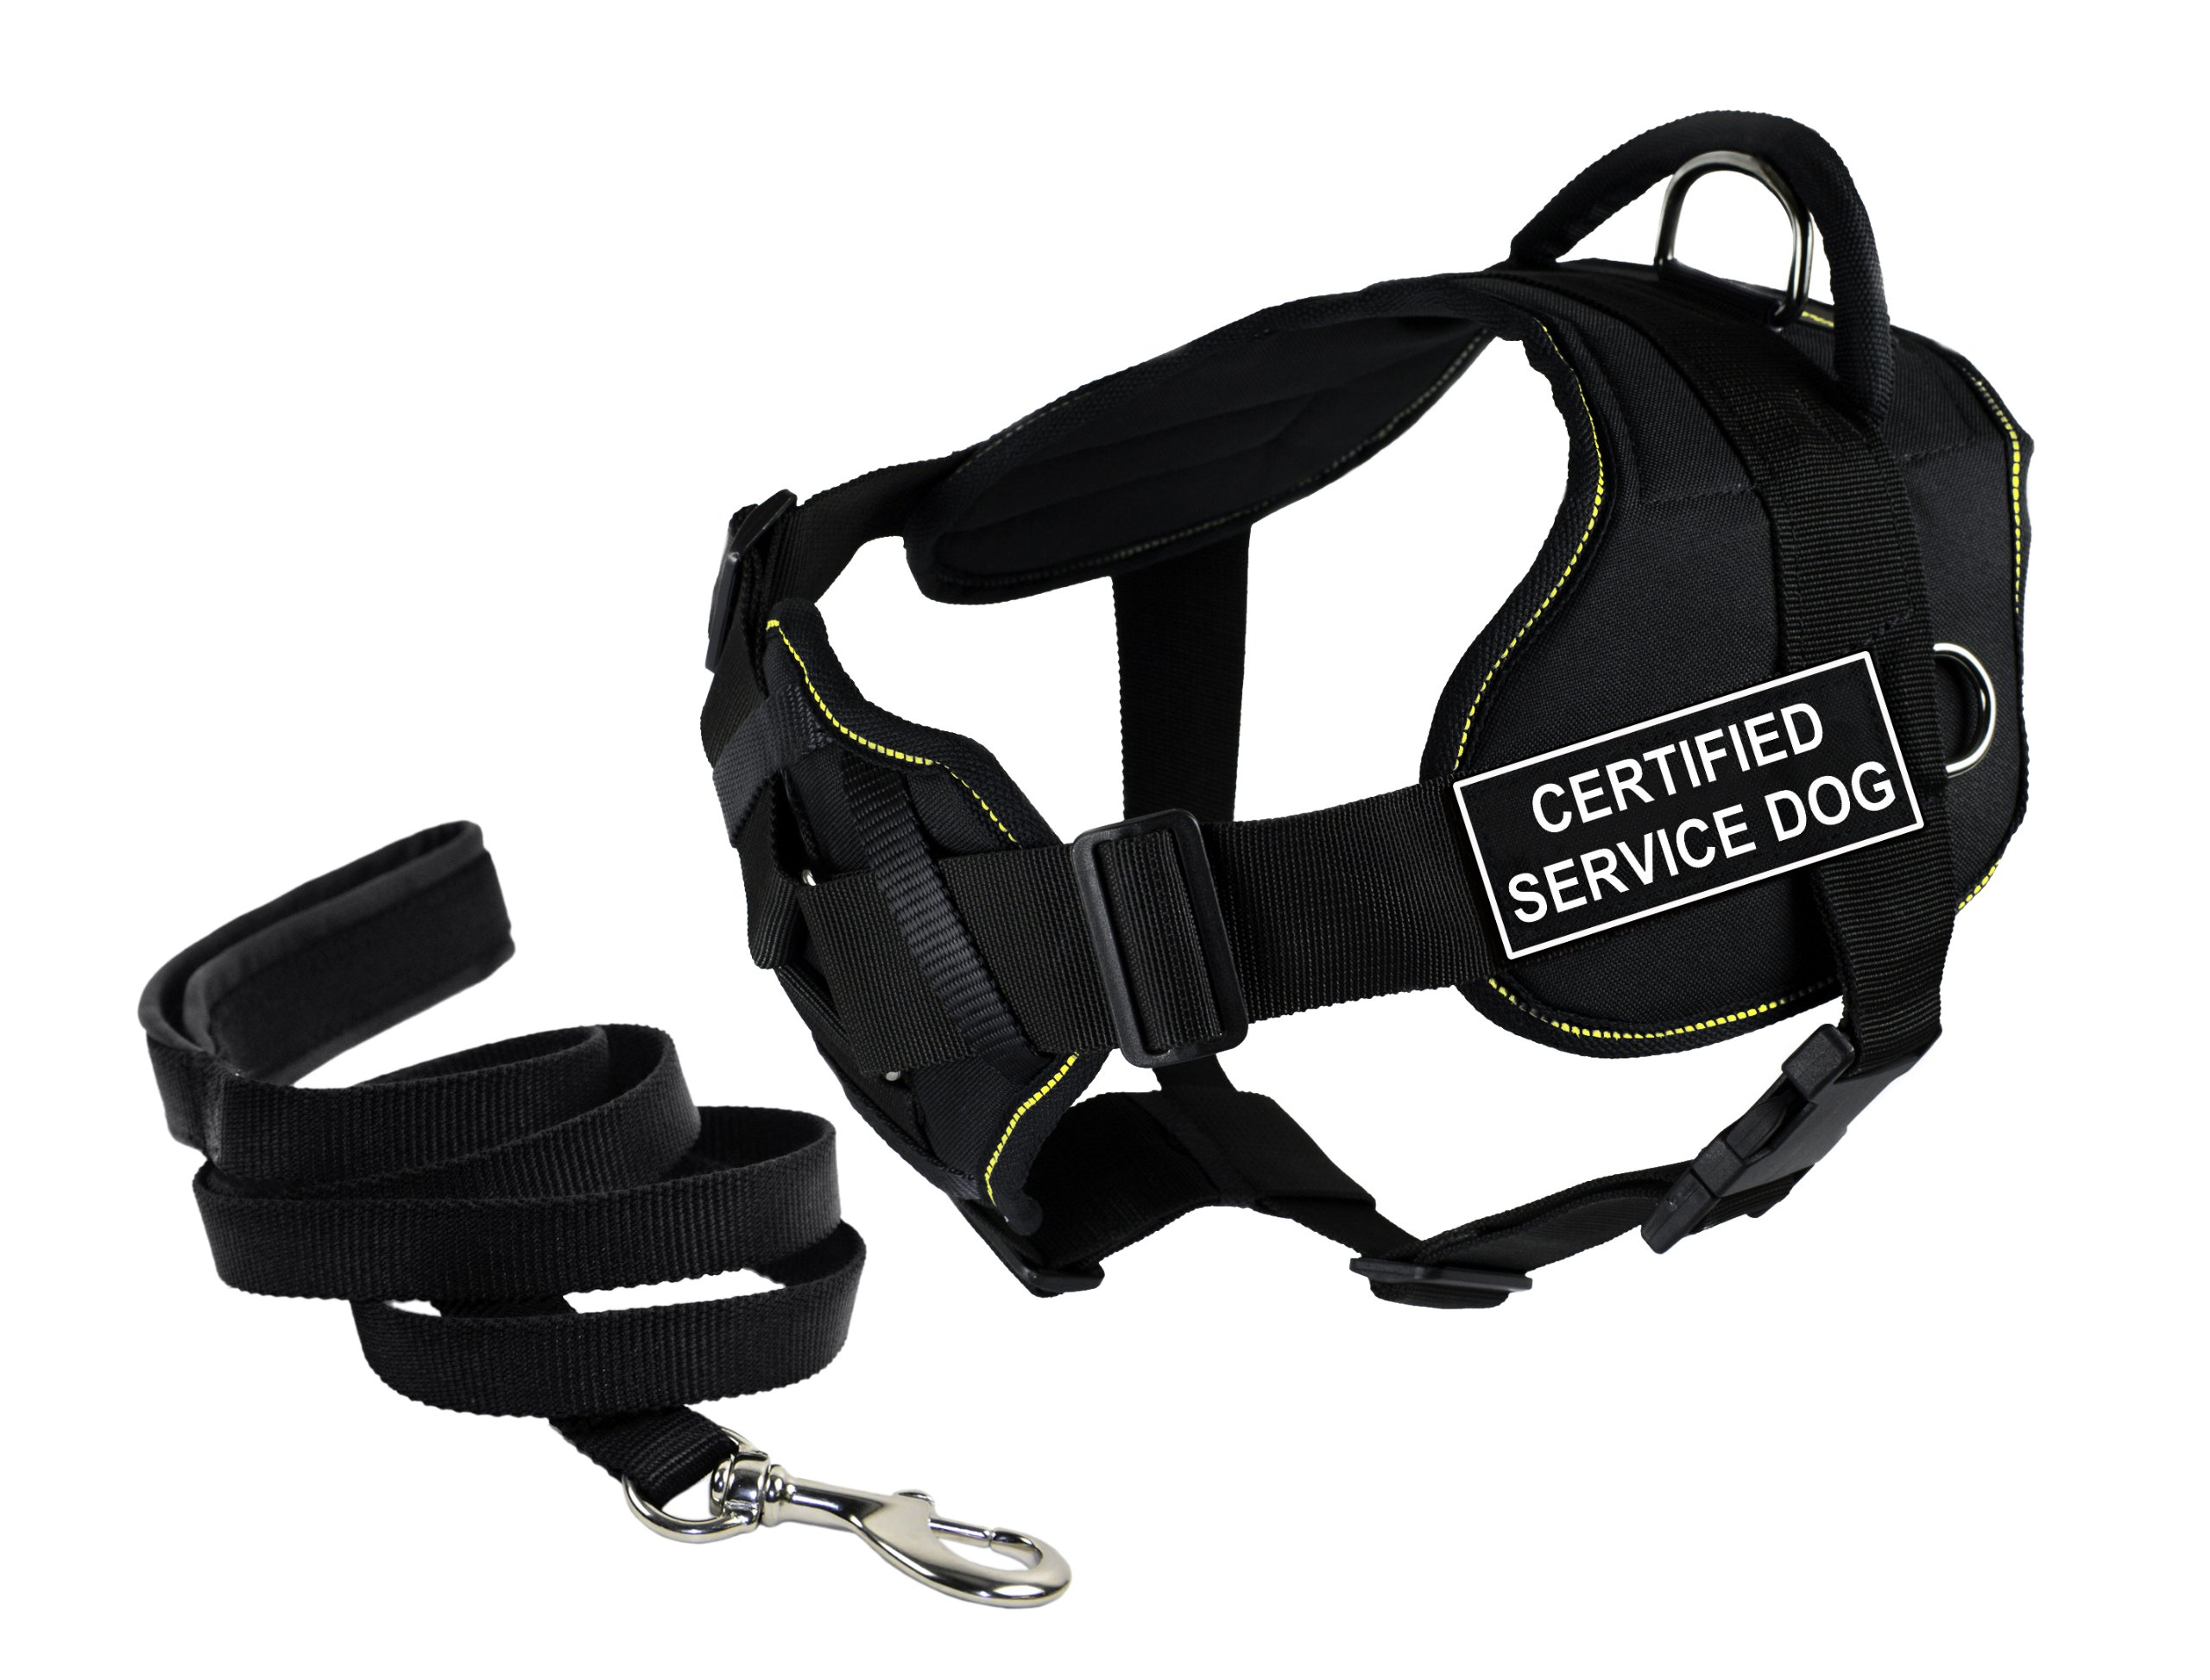 Dean & Tyler's DT Fun Chest Support ''CERTIFIED SERVICE DOG'' Harness, Medium, with 6 ft Padded Puppy Leash.